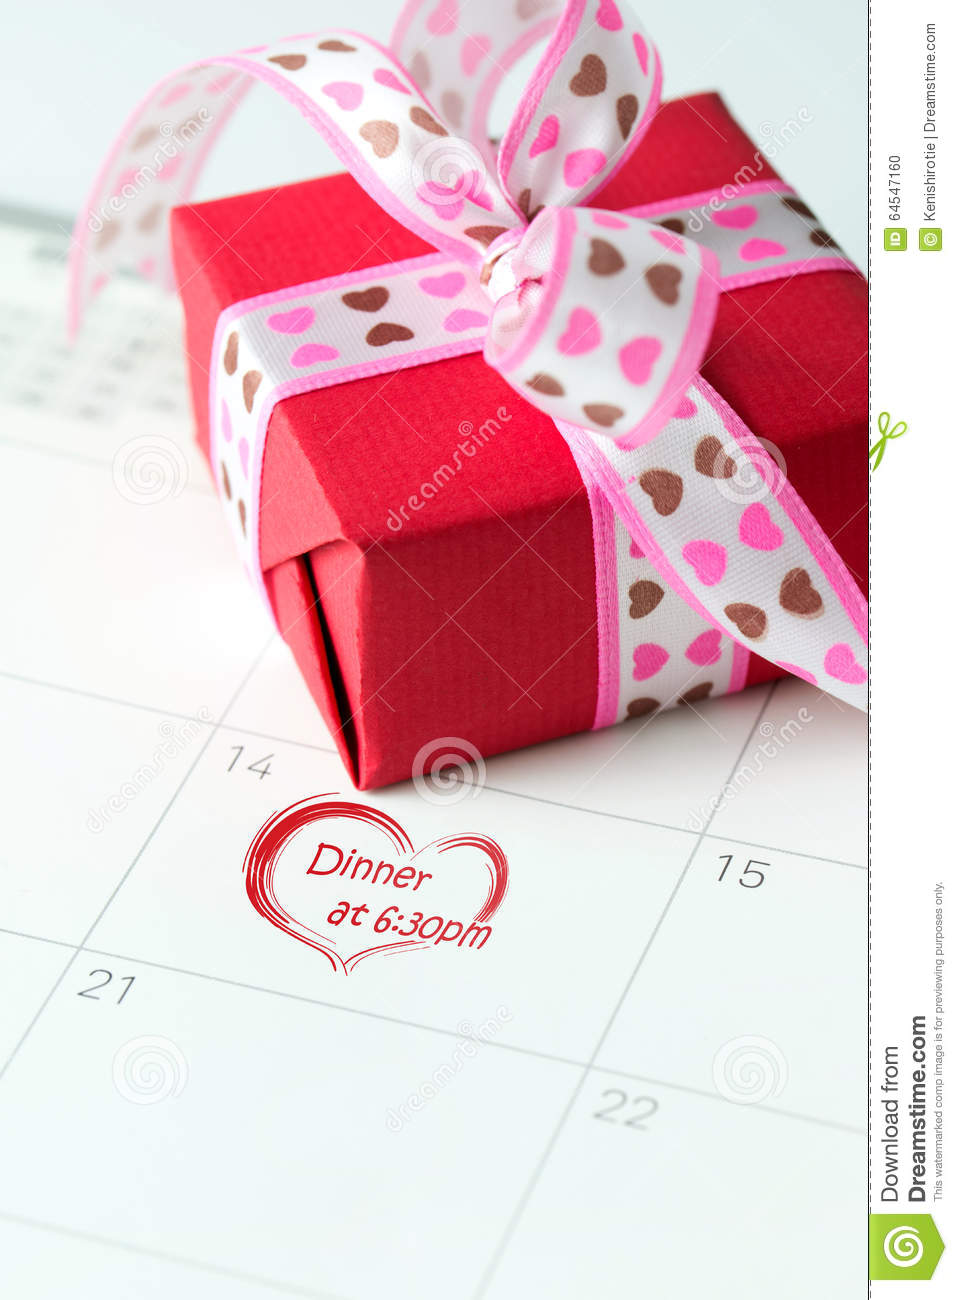 first valentines day dating Valentines and first dates might be less than appealing to you, but it is possible to have a great time without all the pressure and with little fuss.